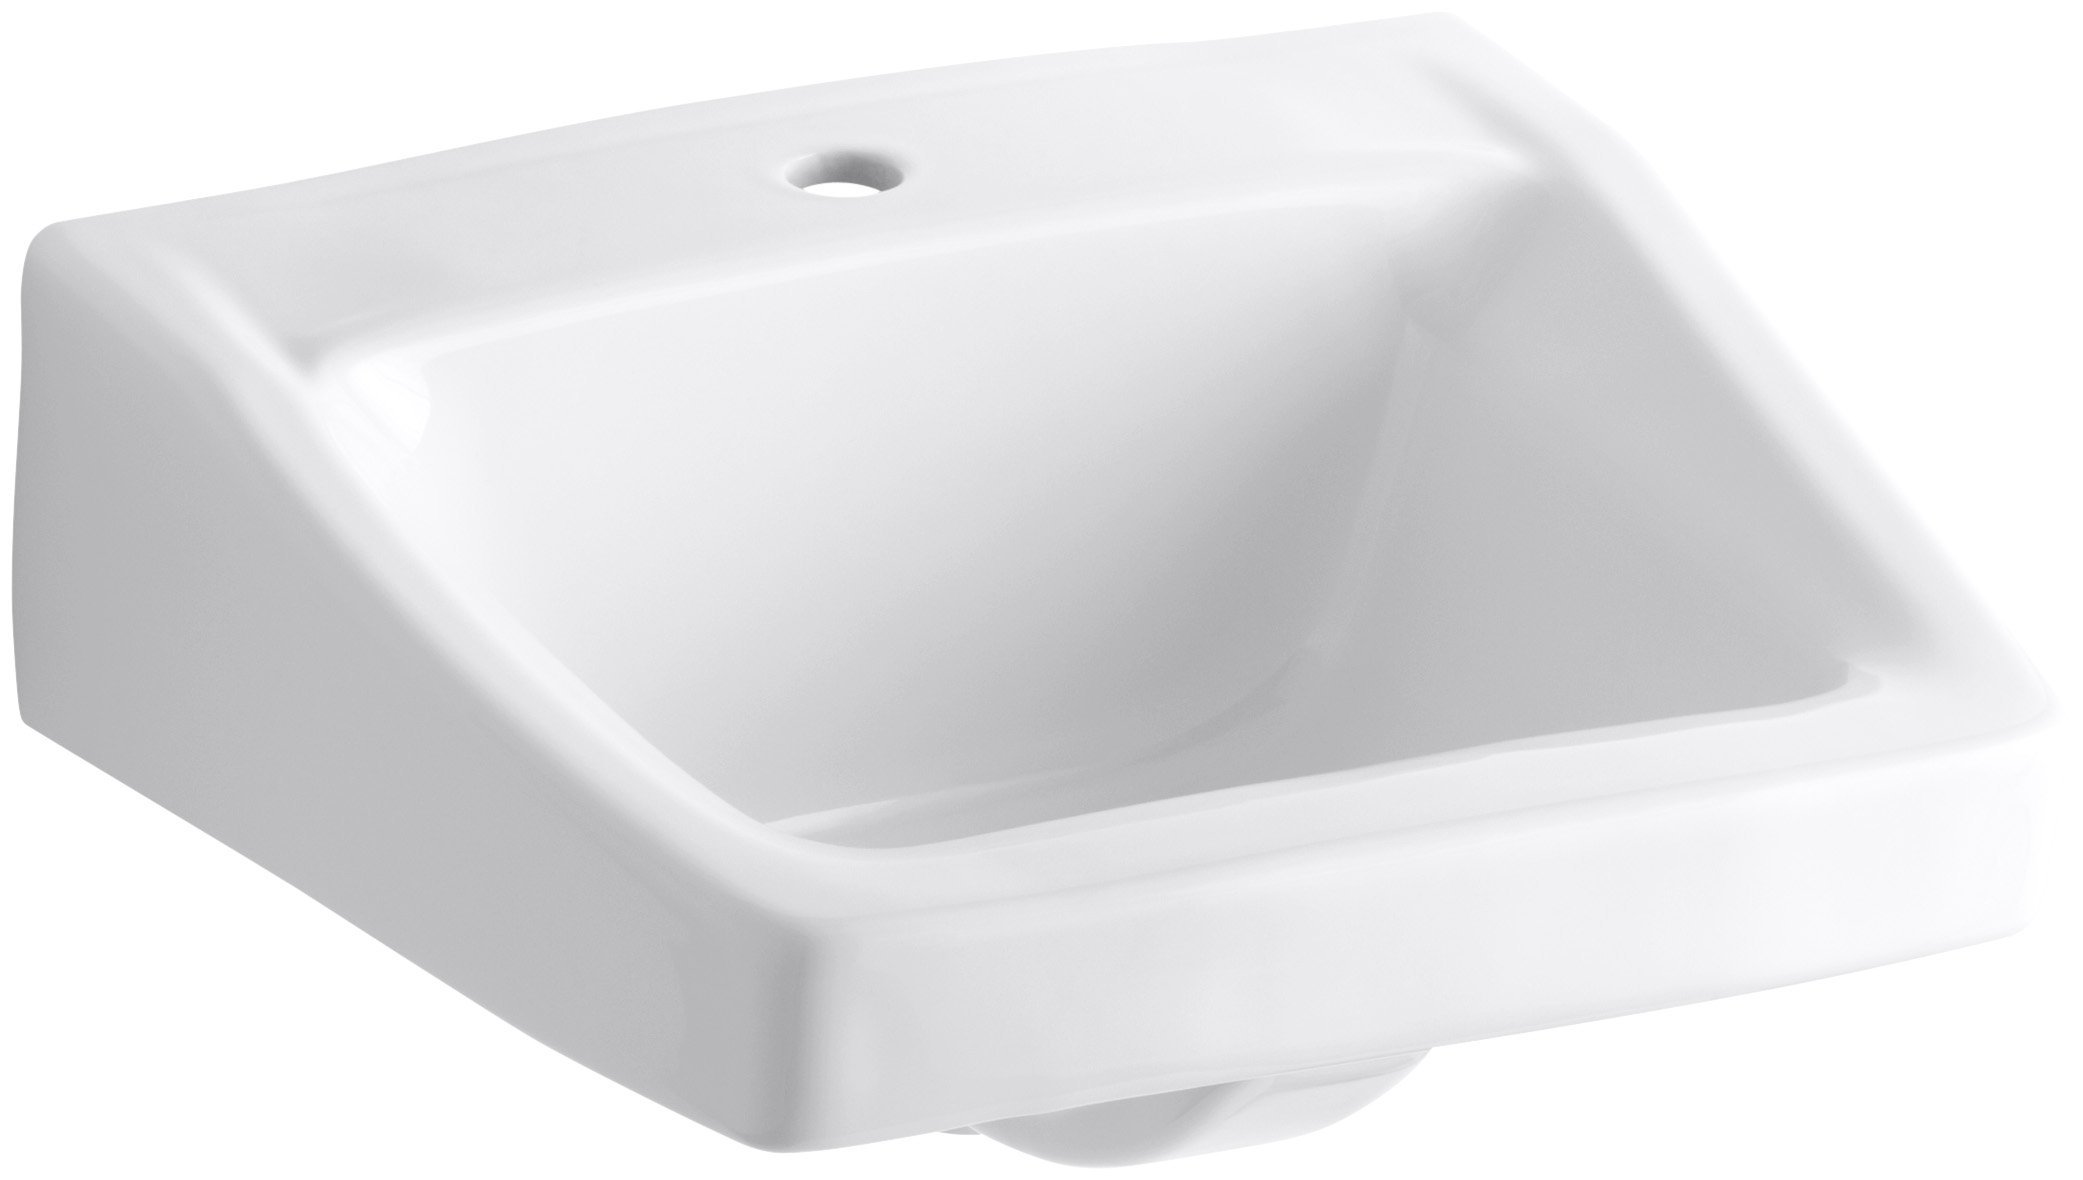 KOHLER K-1722-0 Chesapeake Wall-Mount Bathroom Sink, White